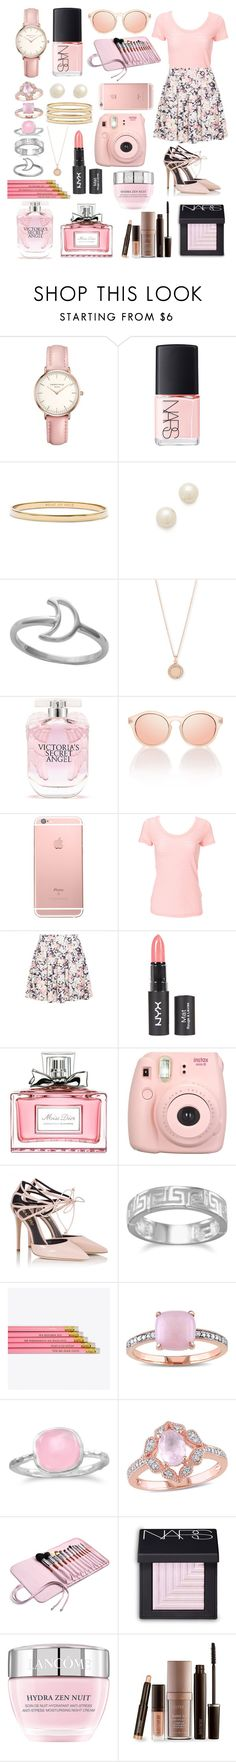 """""""On Wednesdays We Wear Pink"""" by andiecomino ❤ liked on Polyvore featuring Topshop, NARS Cosmetics, Kate Spade, Juliet & Company, Midsummer Star, Astley Clarke, Victoria's Secret, Le Specs, Christian Dior and Fujifilm"""